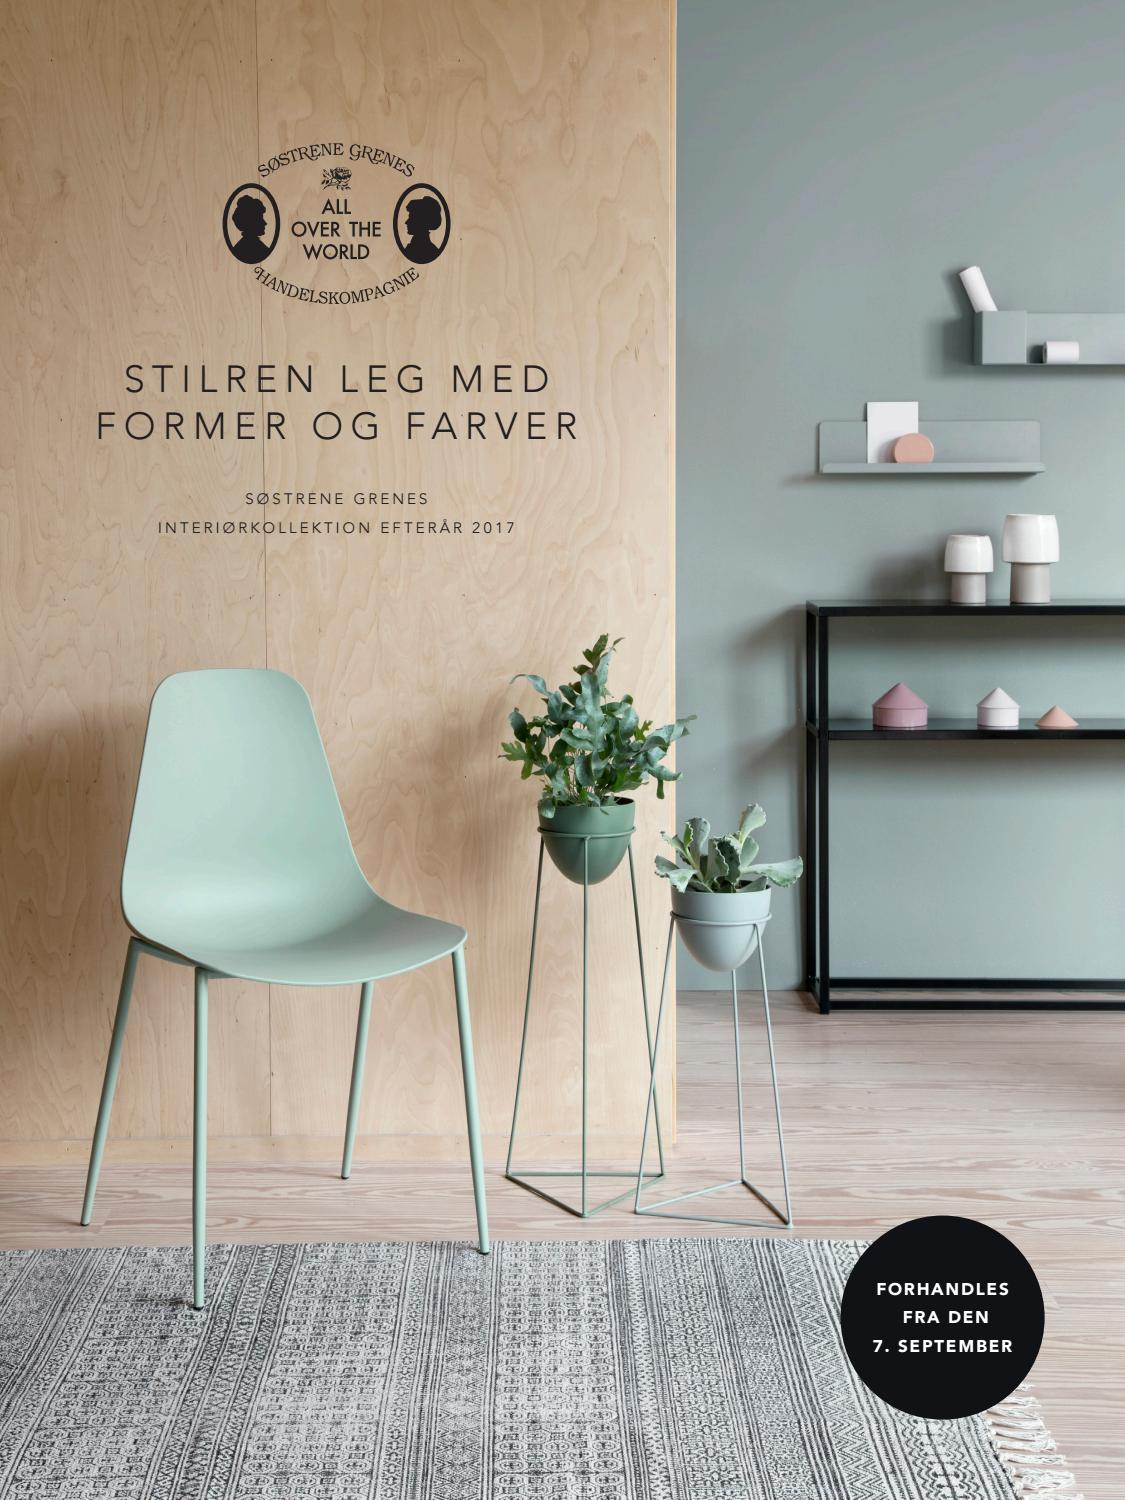 Picture of: Dk Sostrene Grenes Interiorkollektion Efterar 2017 By Sostrene Grene Issuu